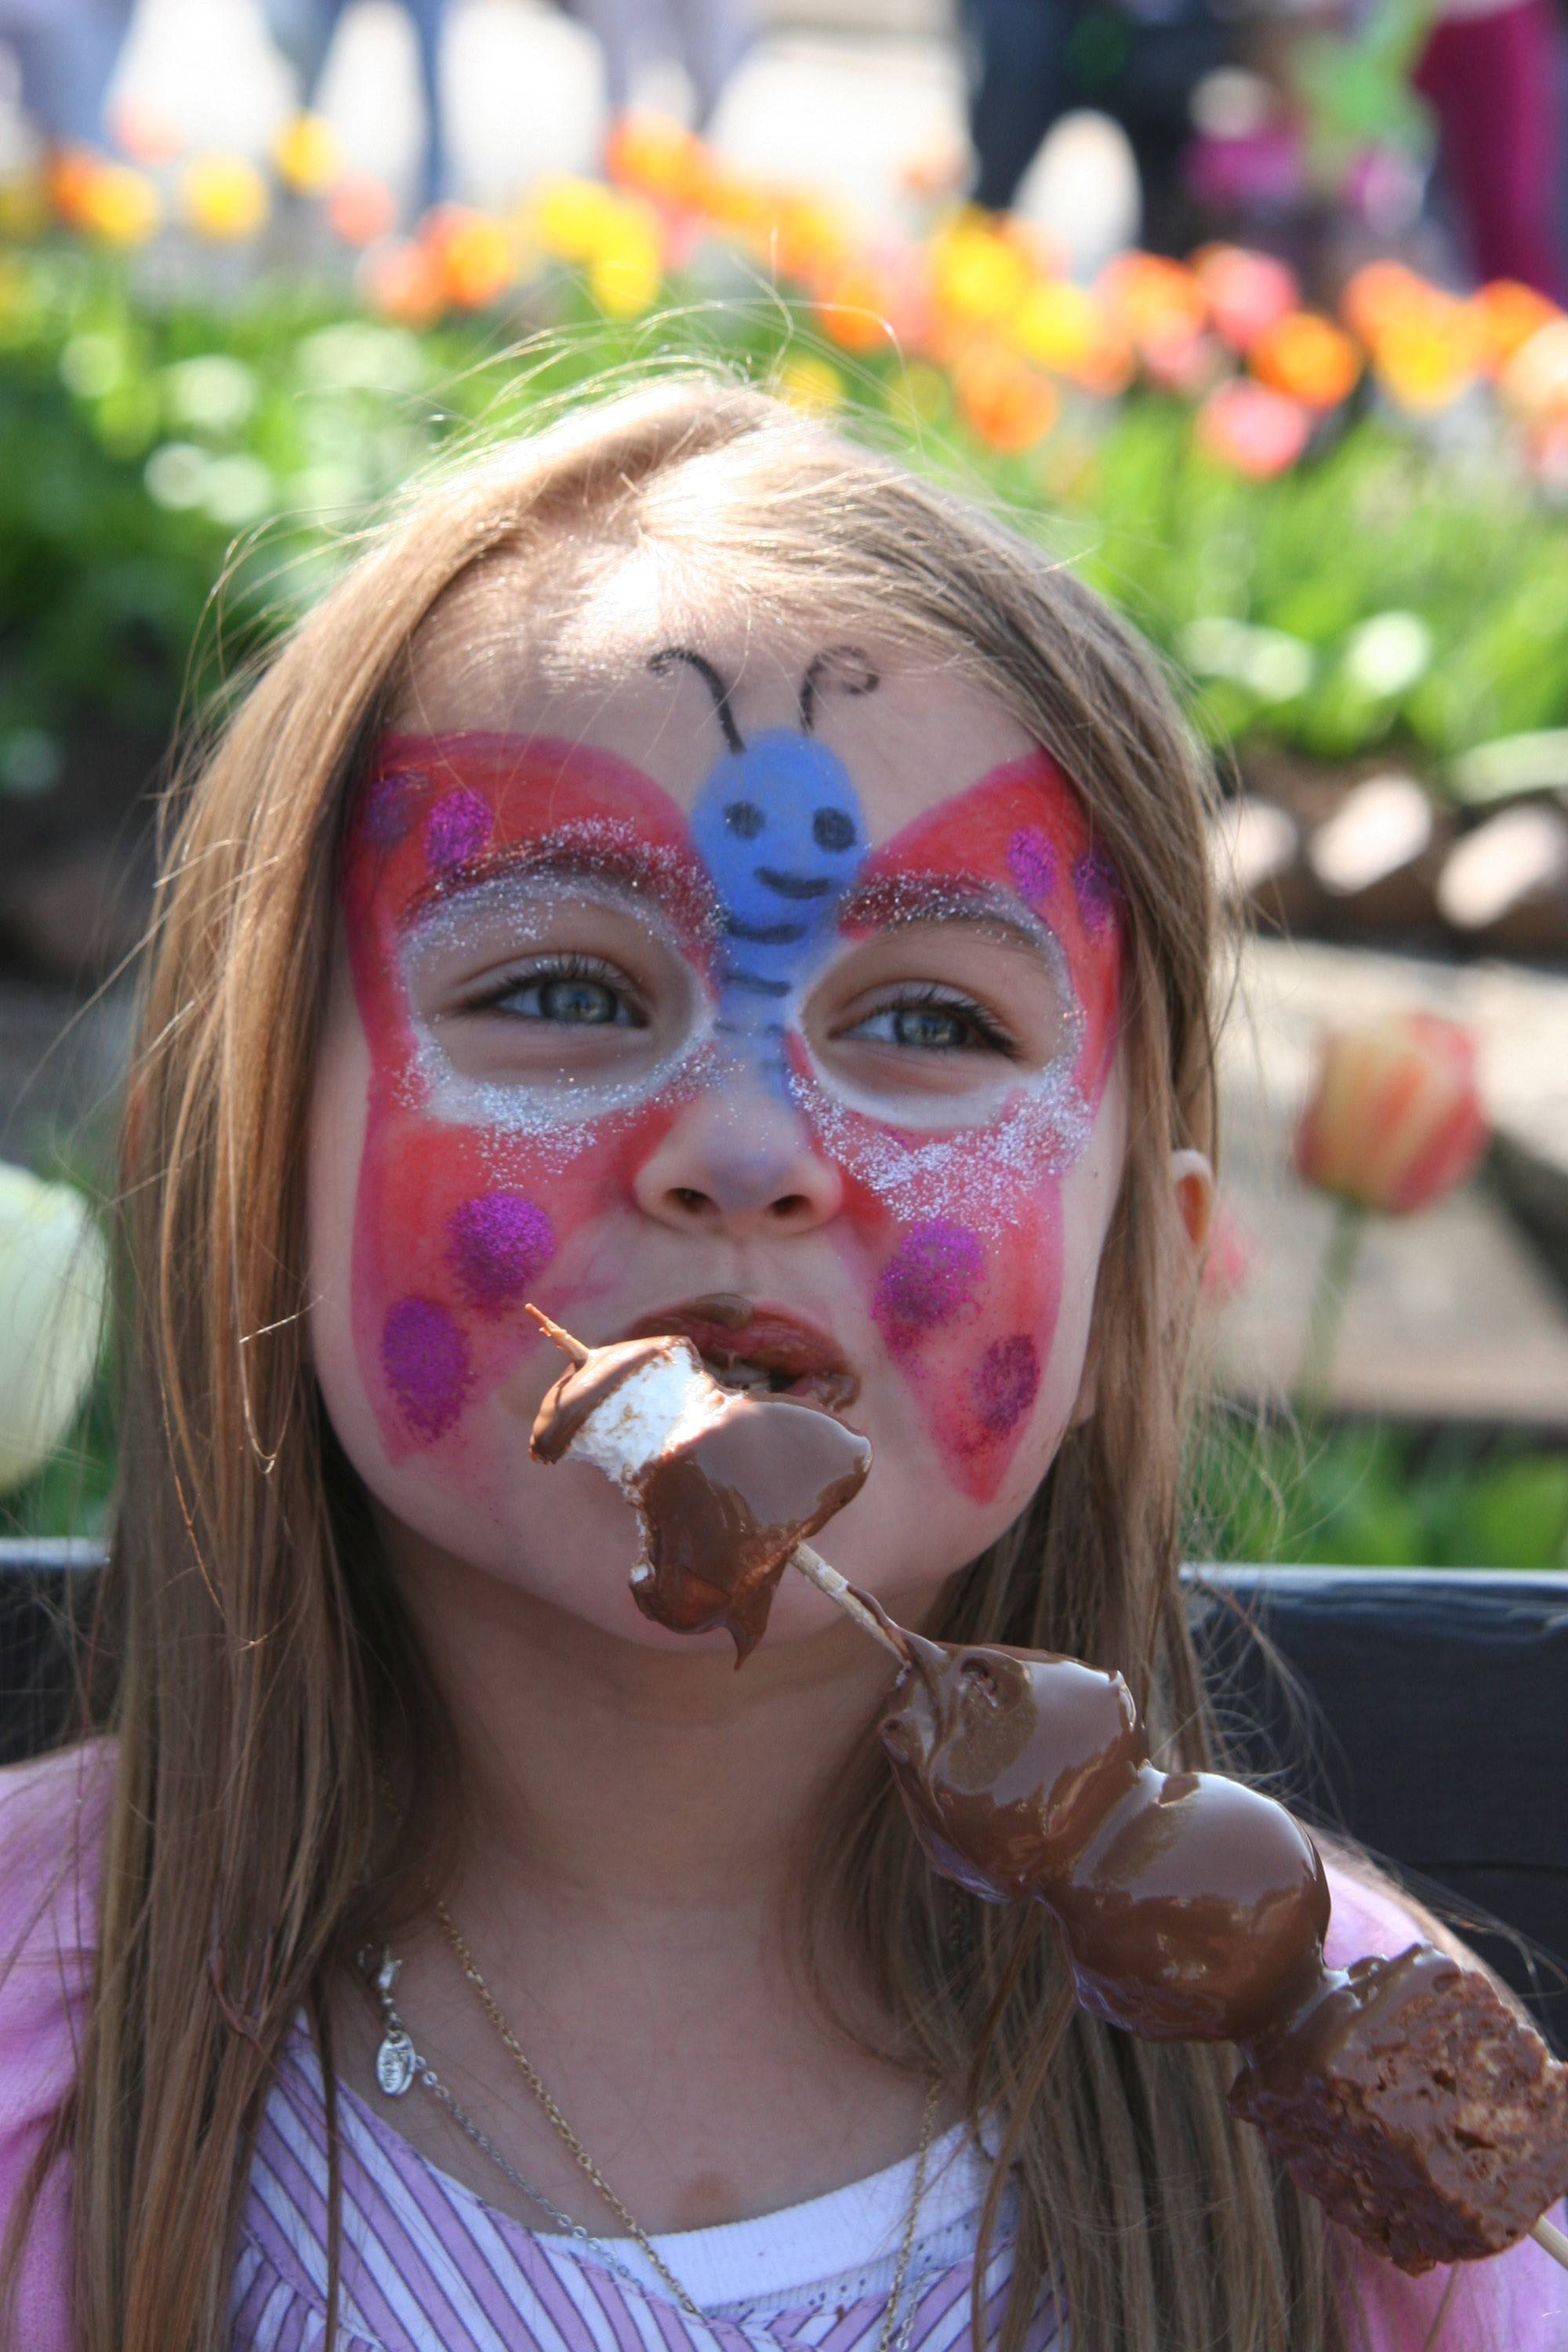 Long Grove's Chocolate Festival returns Friday through Sunday, May 15 to 17.